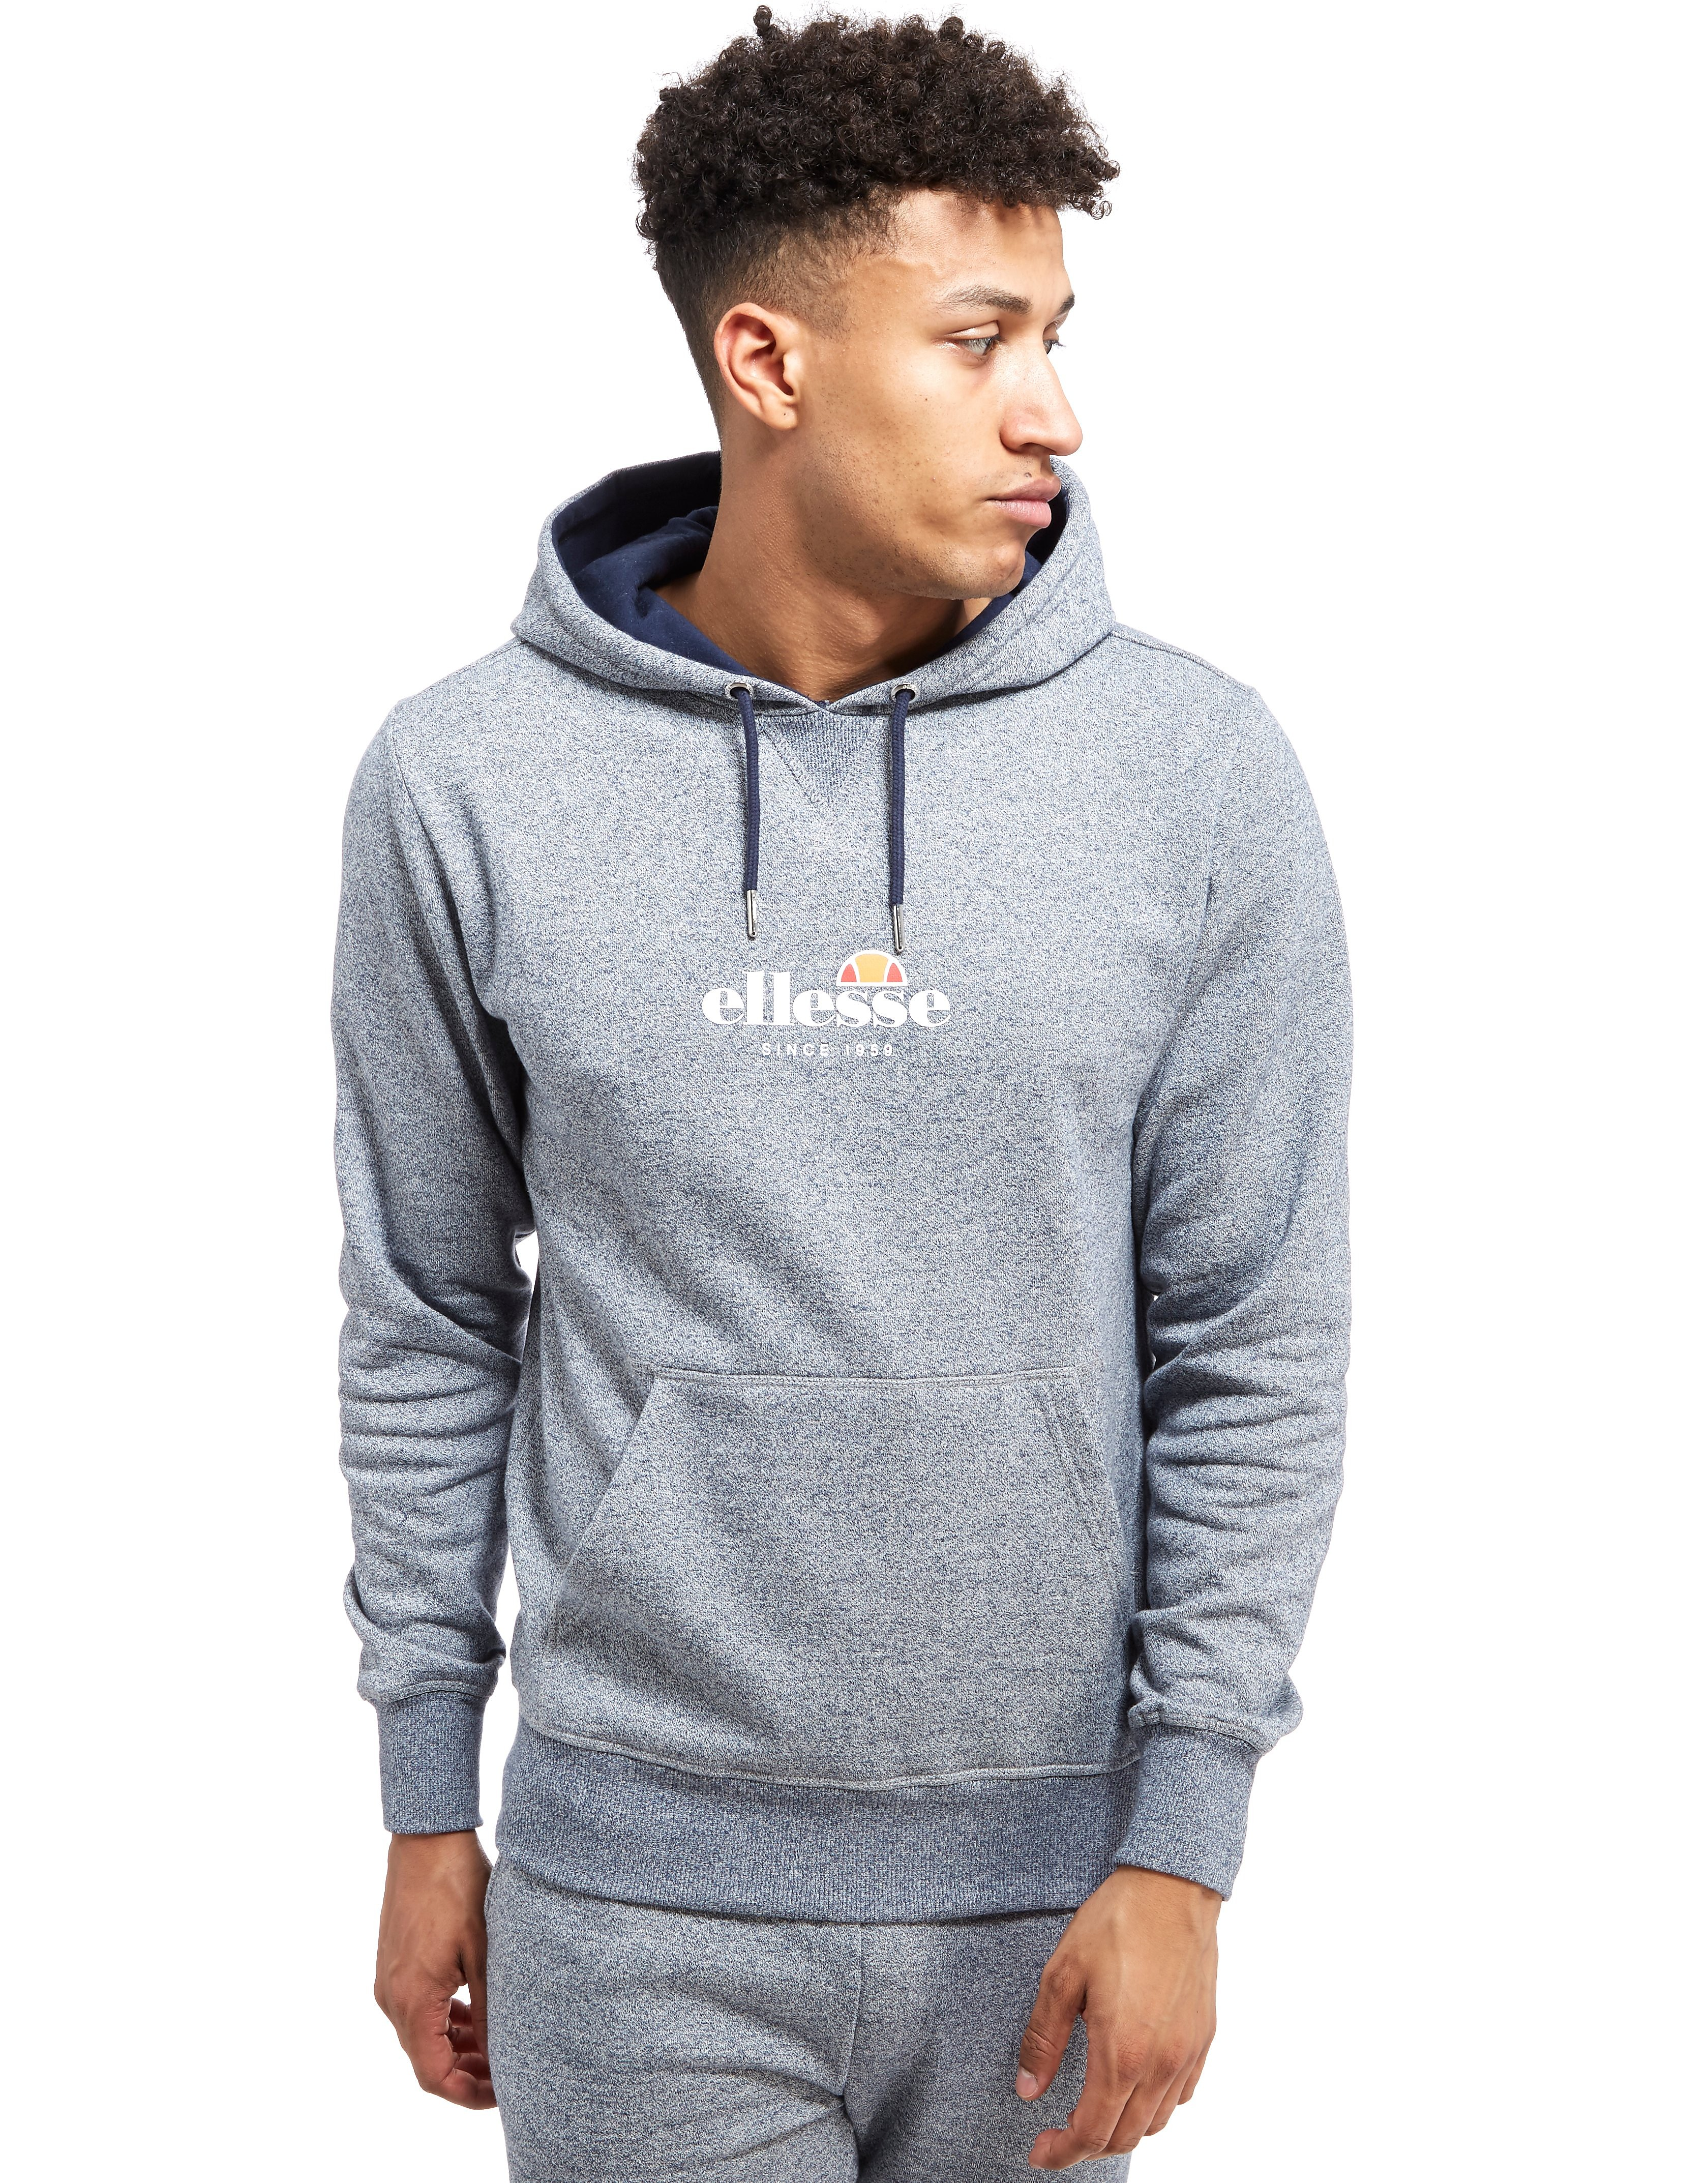 Ellesse Toppino Small Logo Hoody